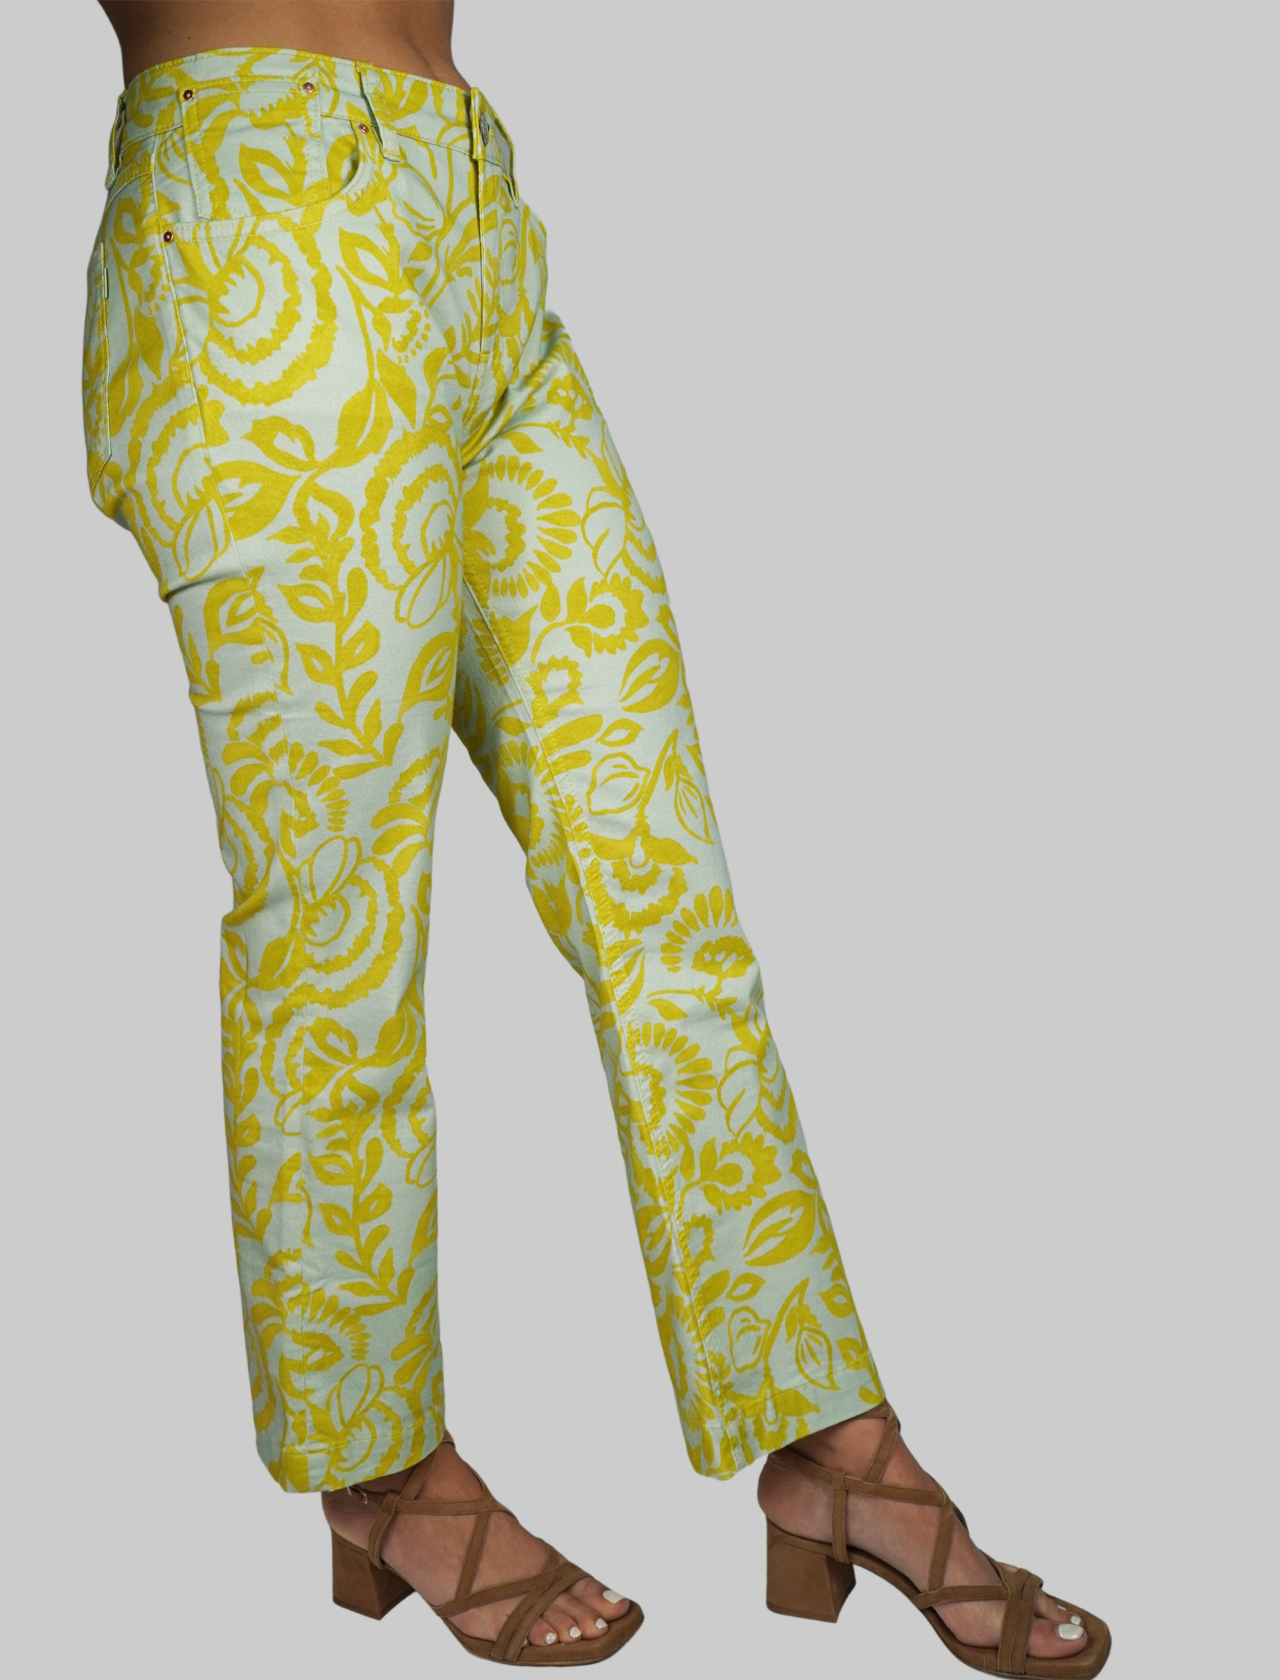 Women's Clothing Trombetta Trousers Soft Cotton Cashmere Blend Water Fantasy Print Maliparmi | Skirts and Pants | JH720410129C6018